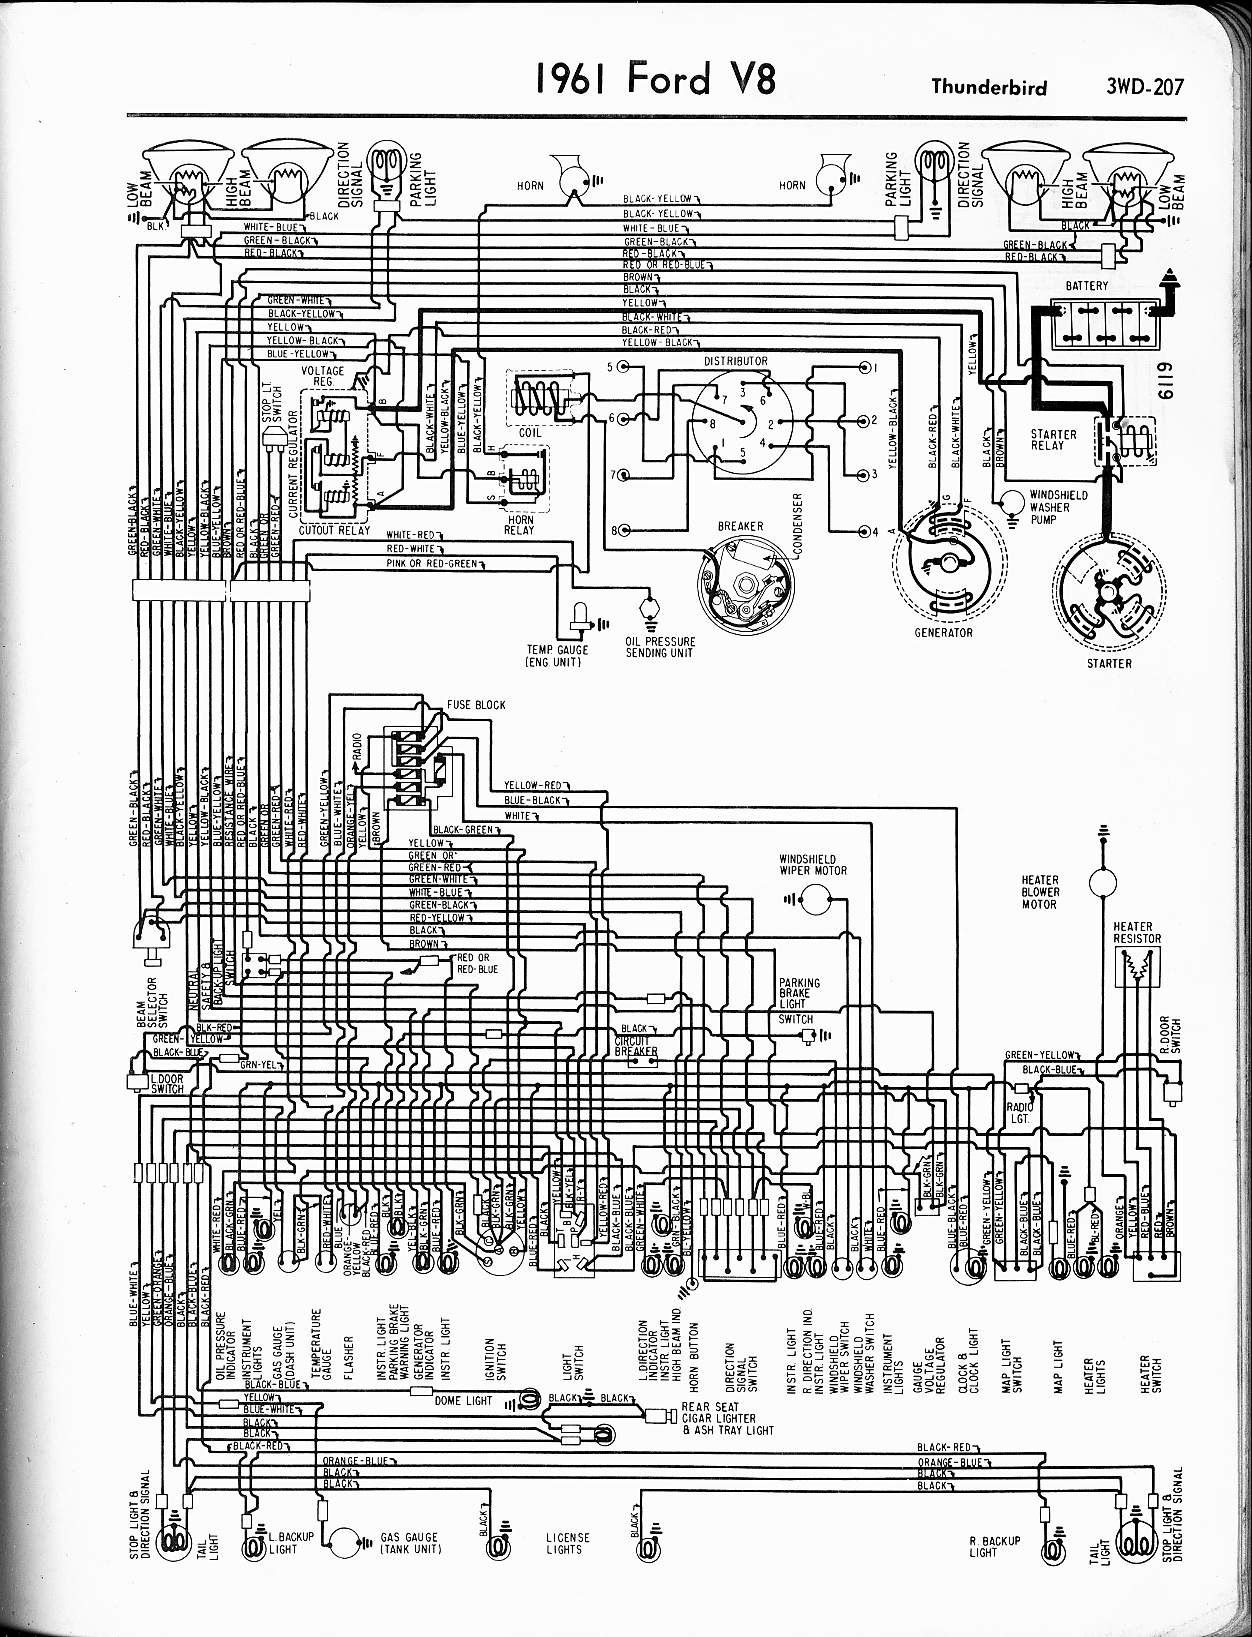 MWire5765 207 57 65 ford wiring diagrams Equus Fuel Gauge Wiring Diagram at bakdesigns.co